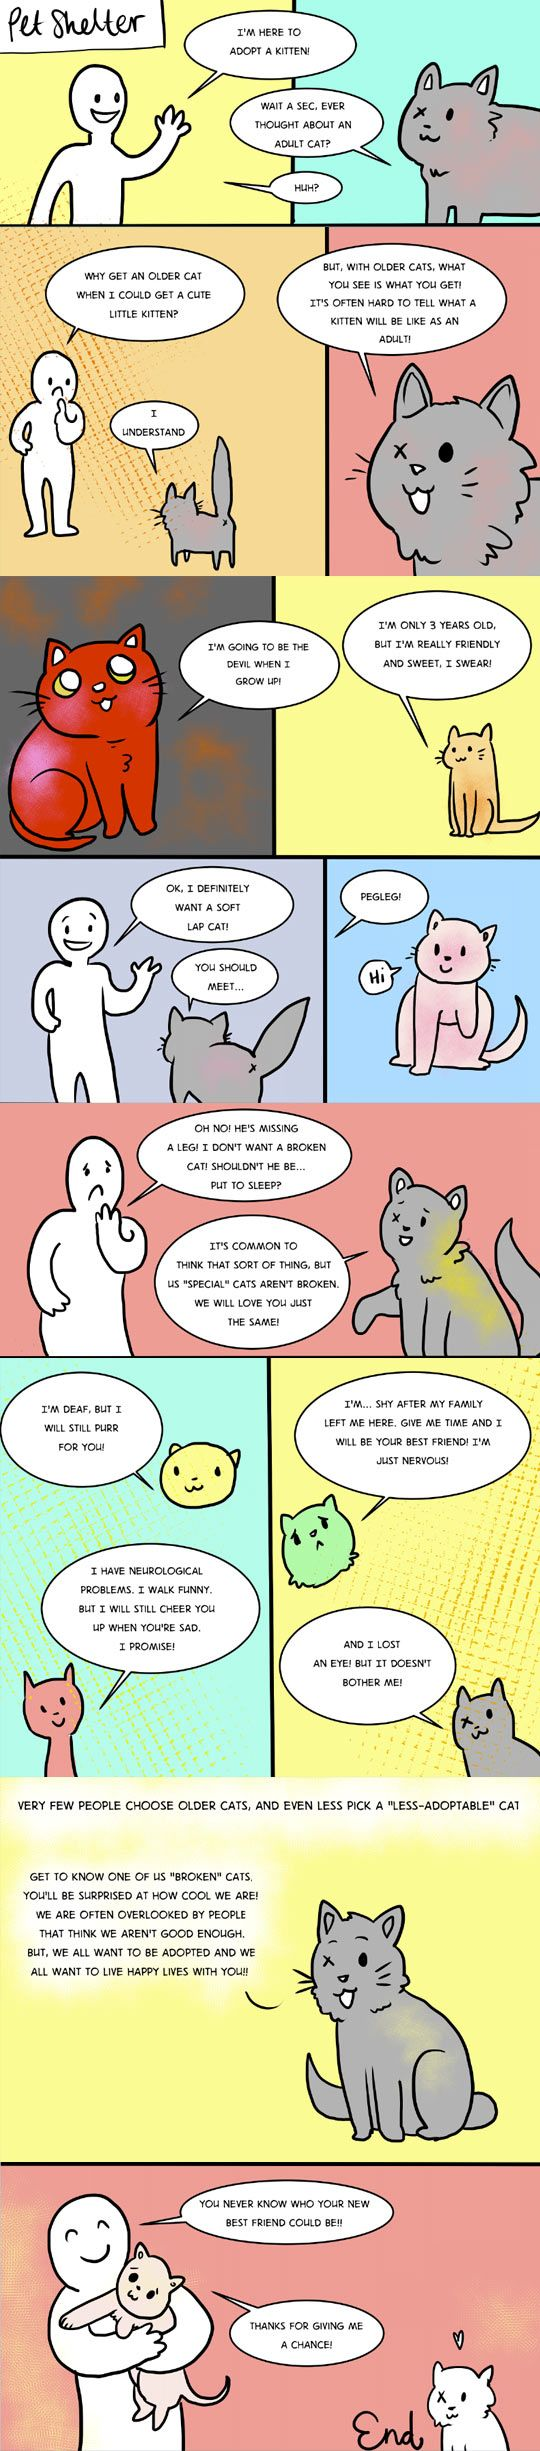 Great message about #adopting the right #pet for you! Just because it's not the kitten or puppy you pictured, doesn't mean s/he's not a fantastic companion.